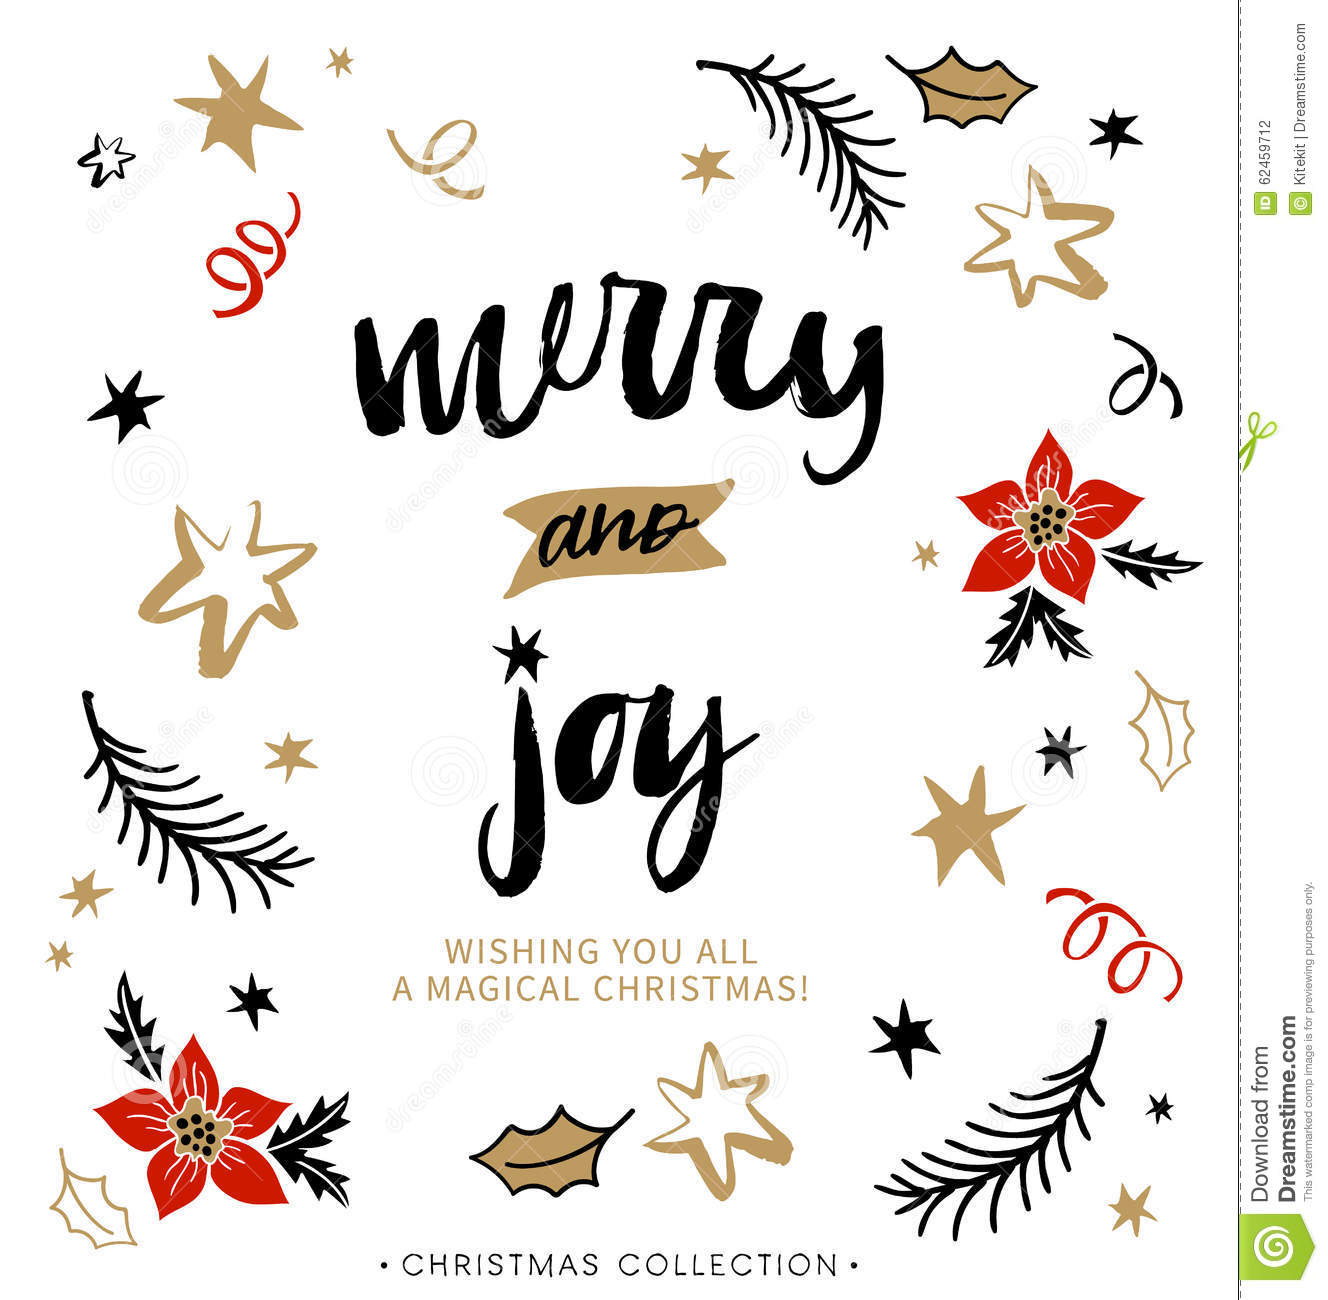 Merry And Joy Christmas Greeting Card With Calligraphy Stock Vector